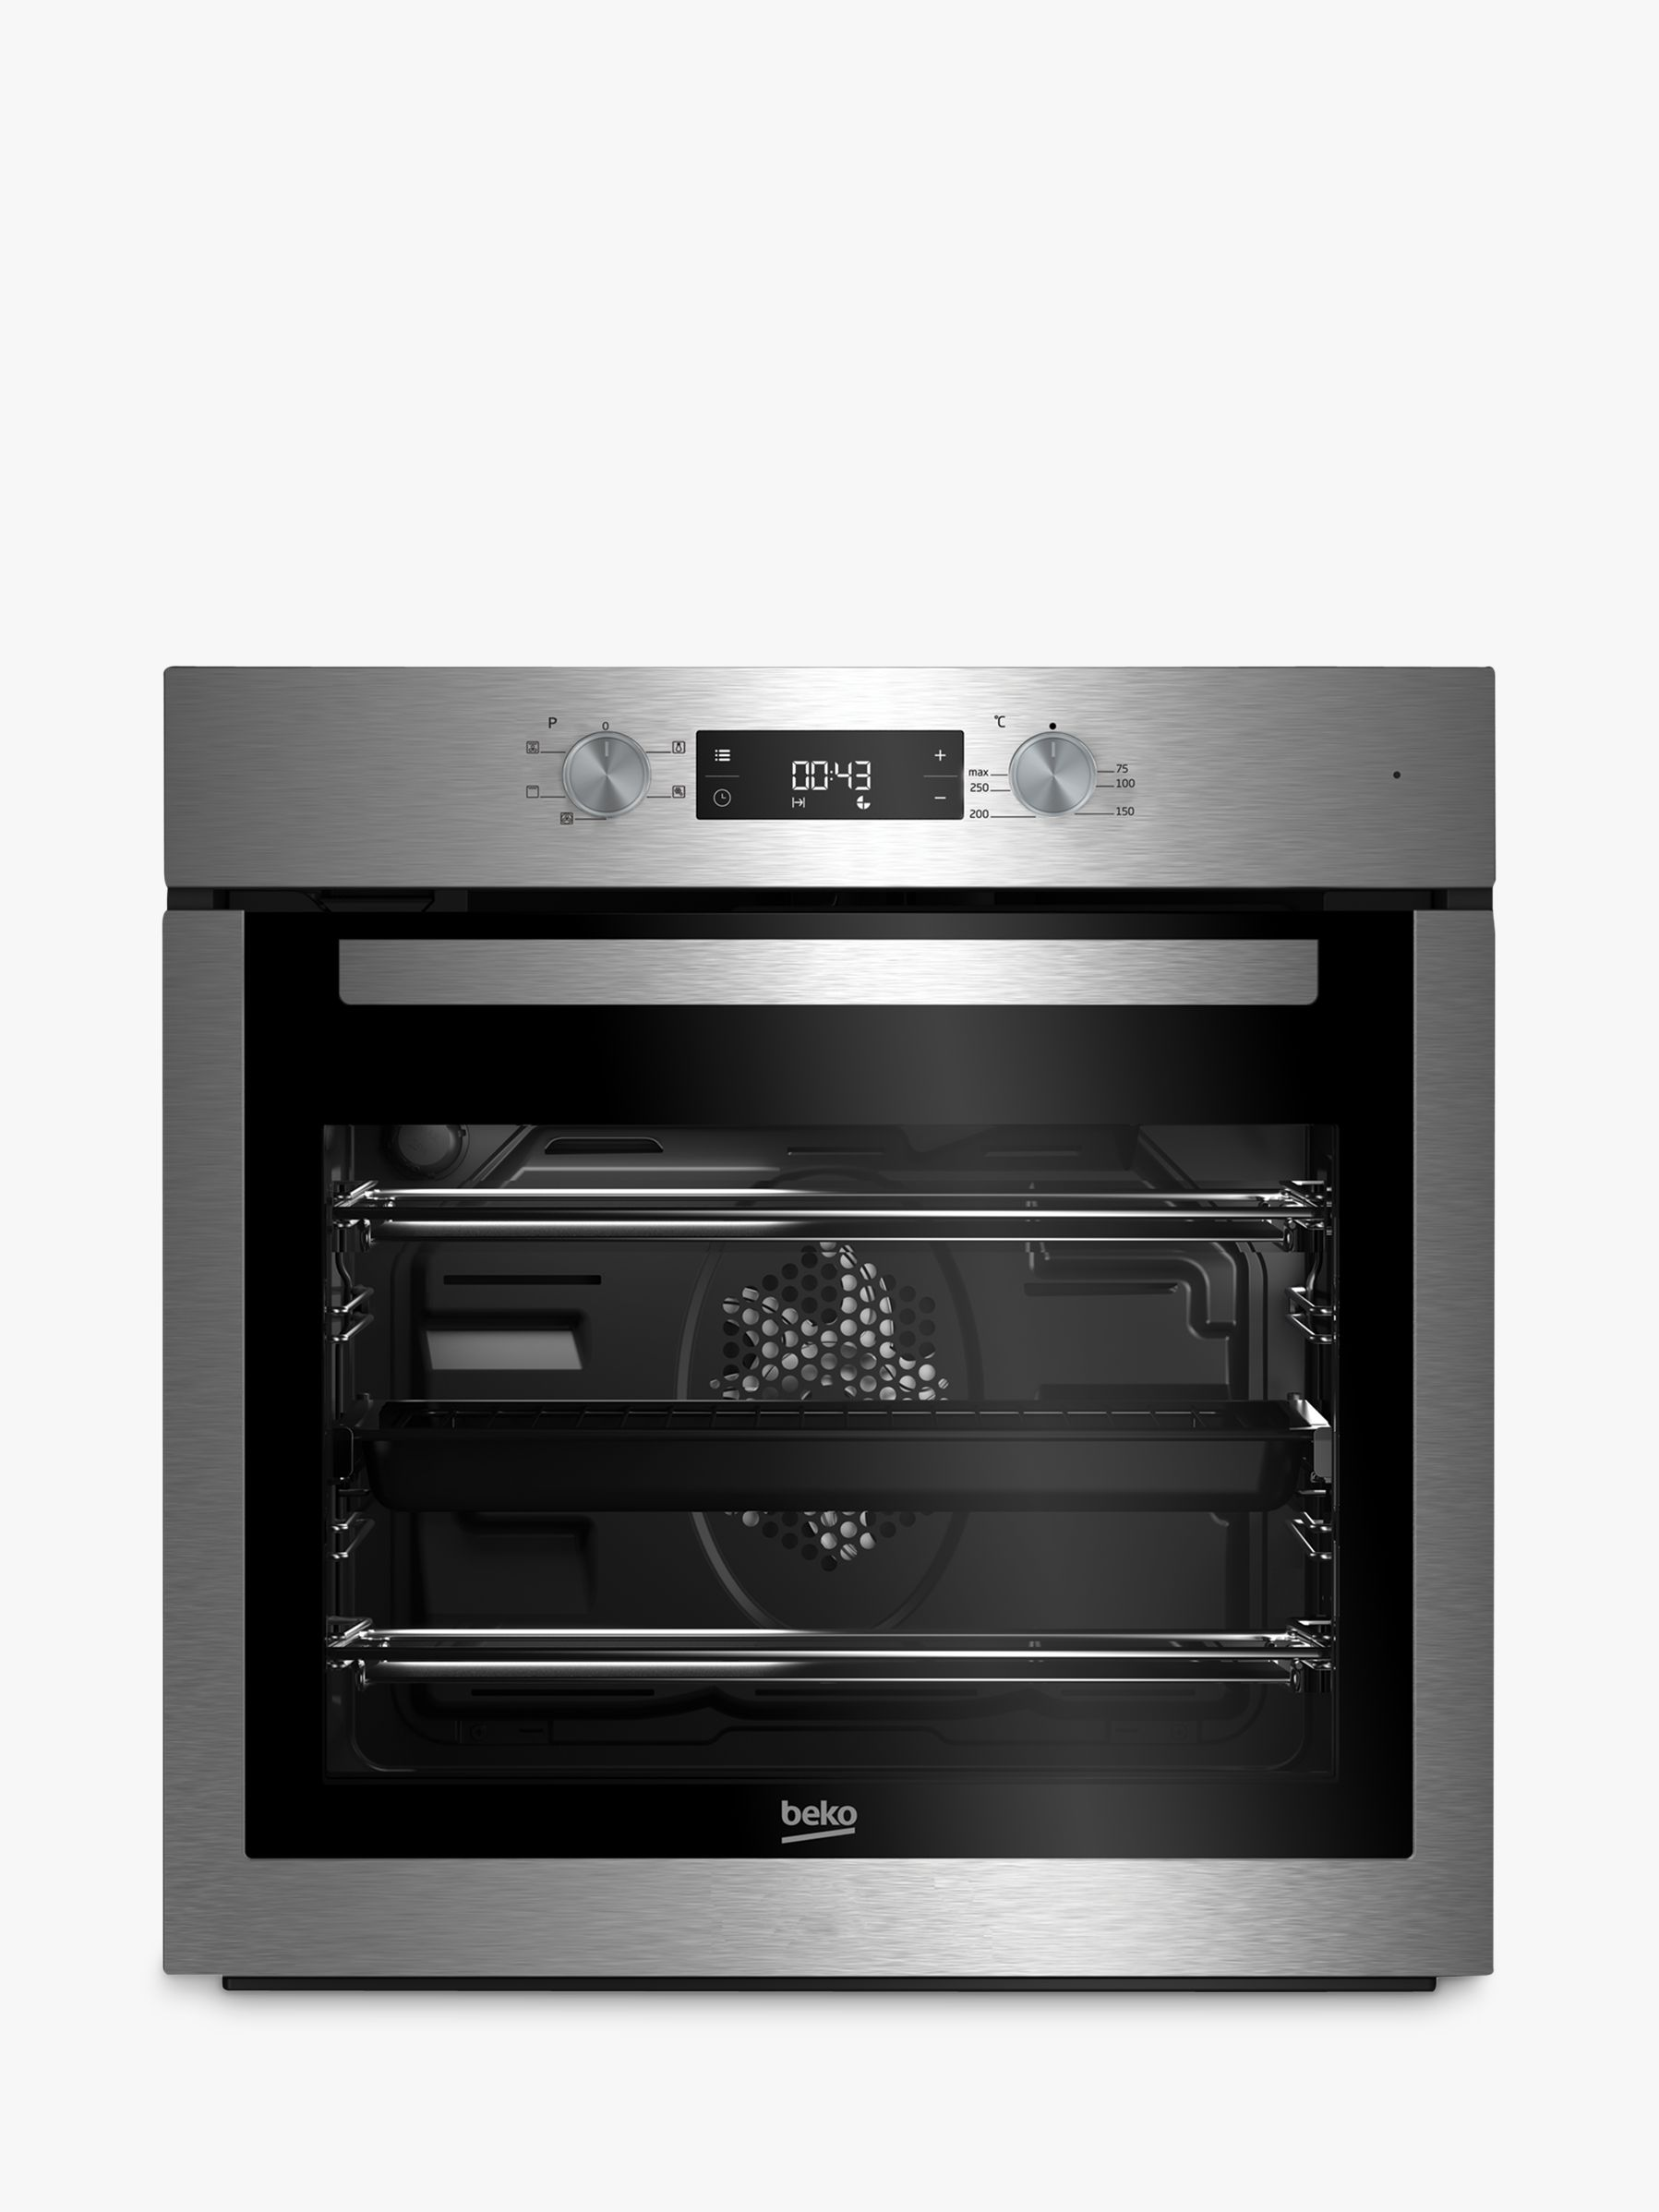 beko oven wiring diagram philips advance metal halide ballast bif16300x built in single stainless steel at john lewis buybeko online johnlewis com